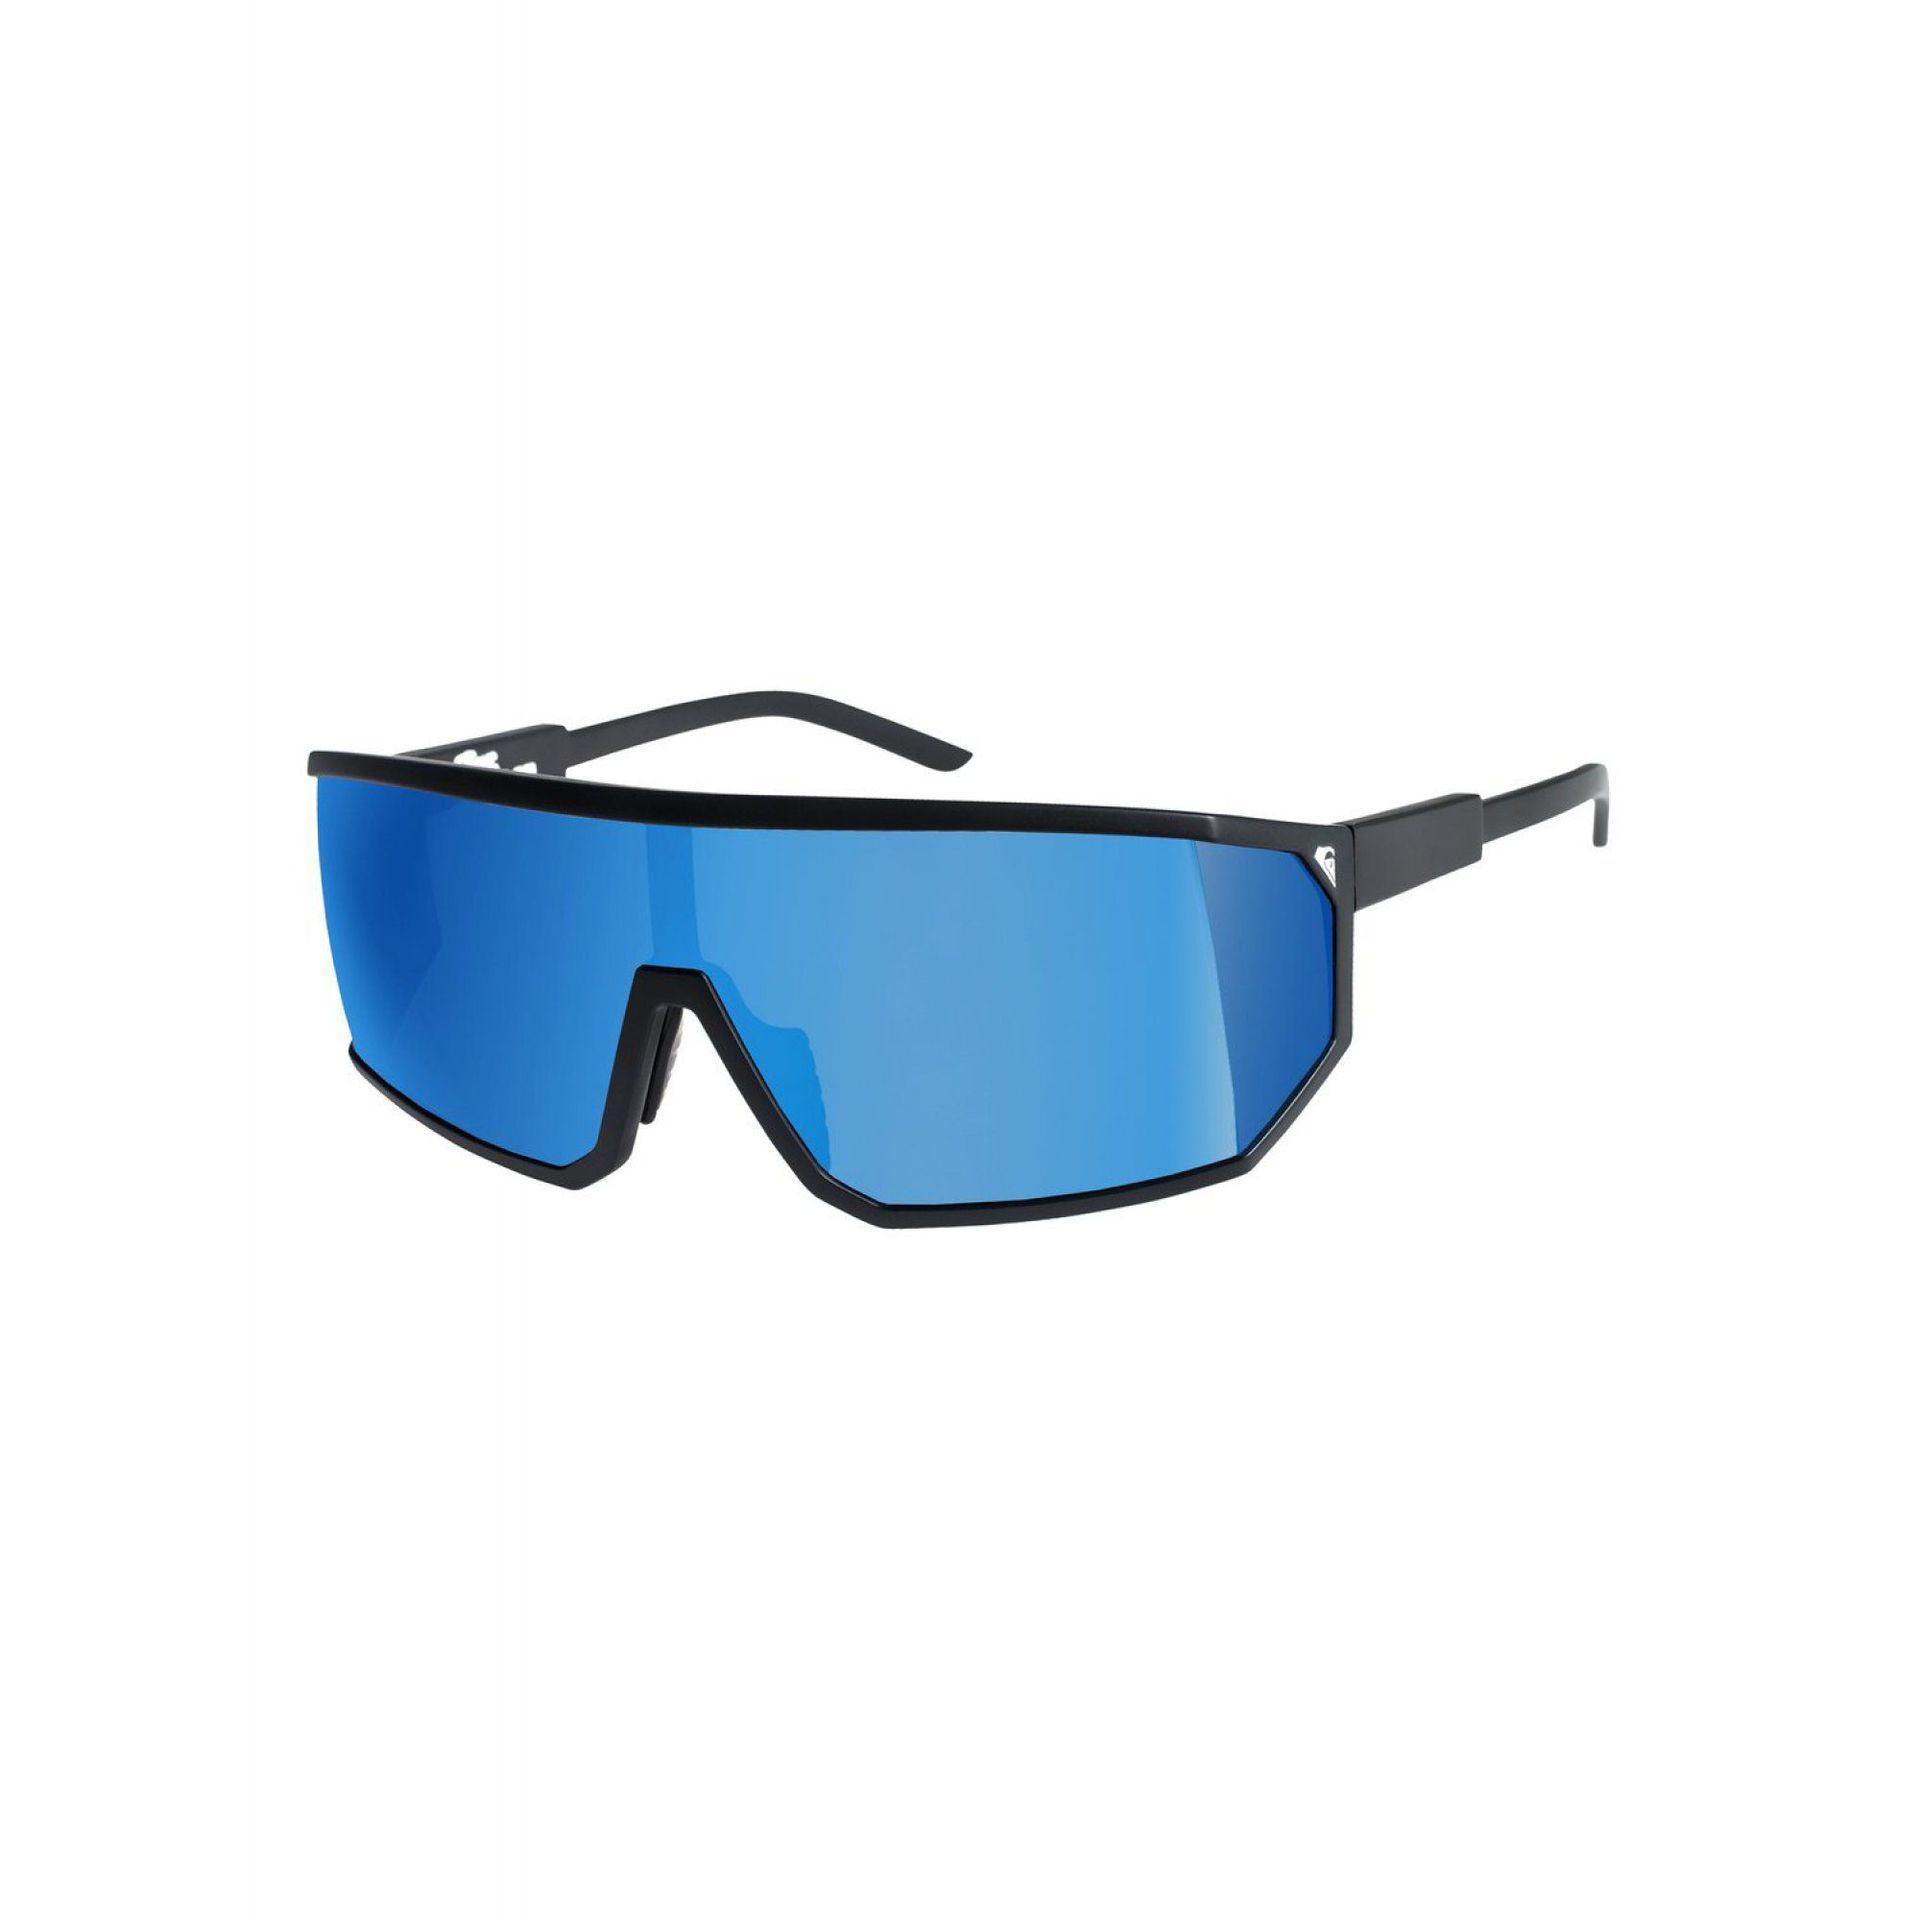 OKULARY QUIKSILVER THE MULLET XKKB 1